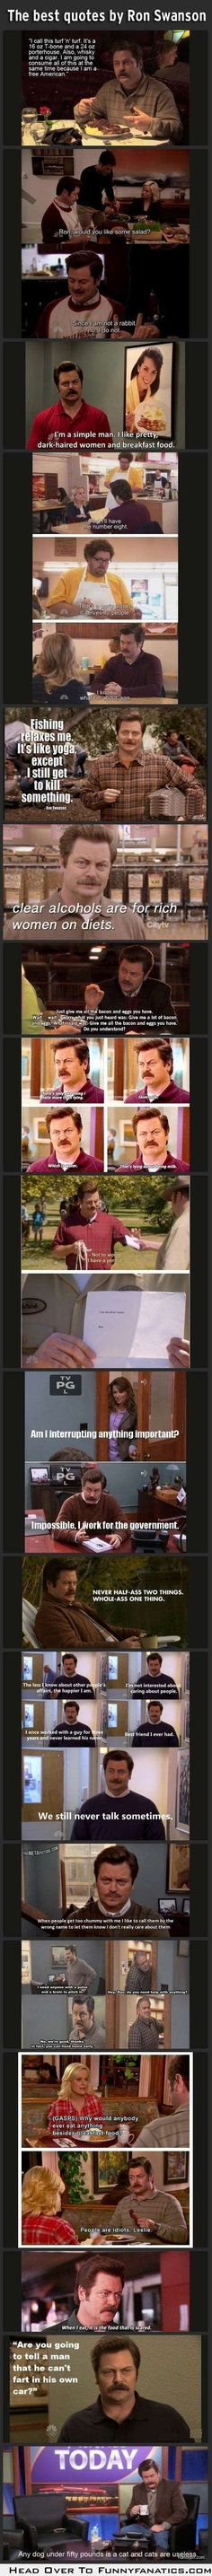 I don't watch Parks & Rec...but this is funny!!